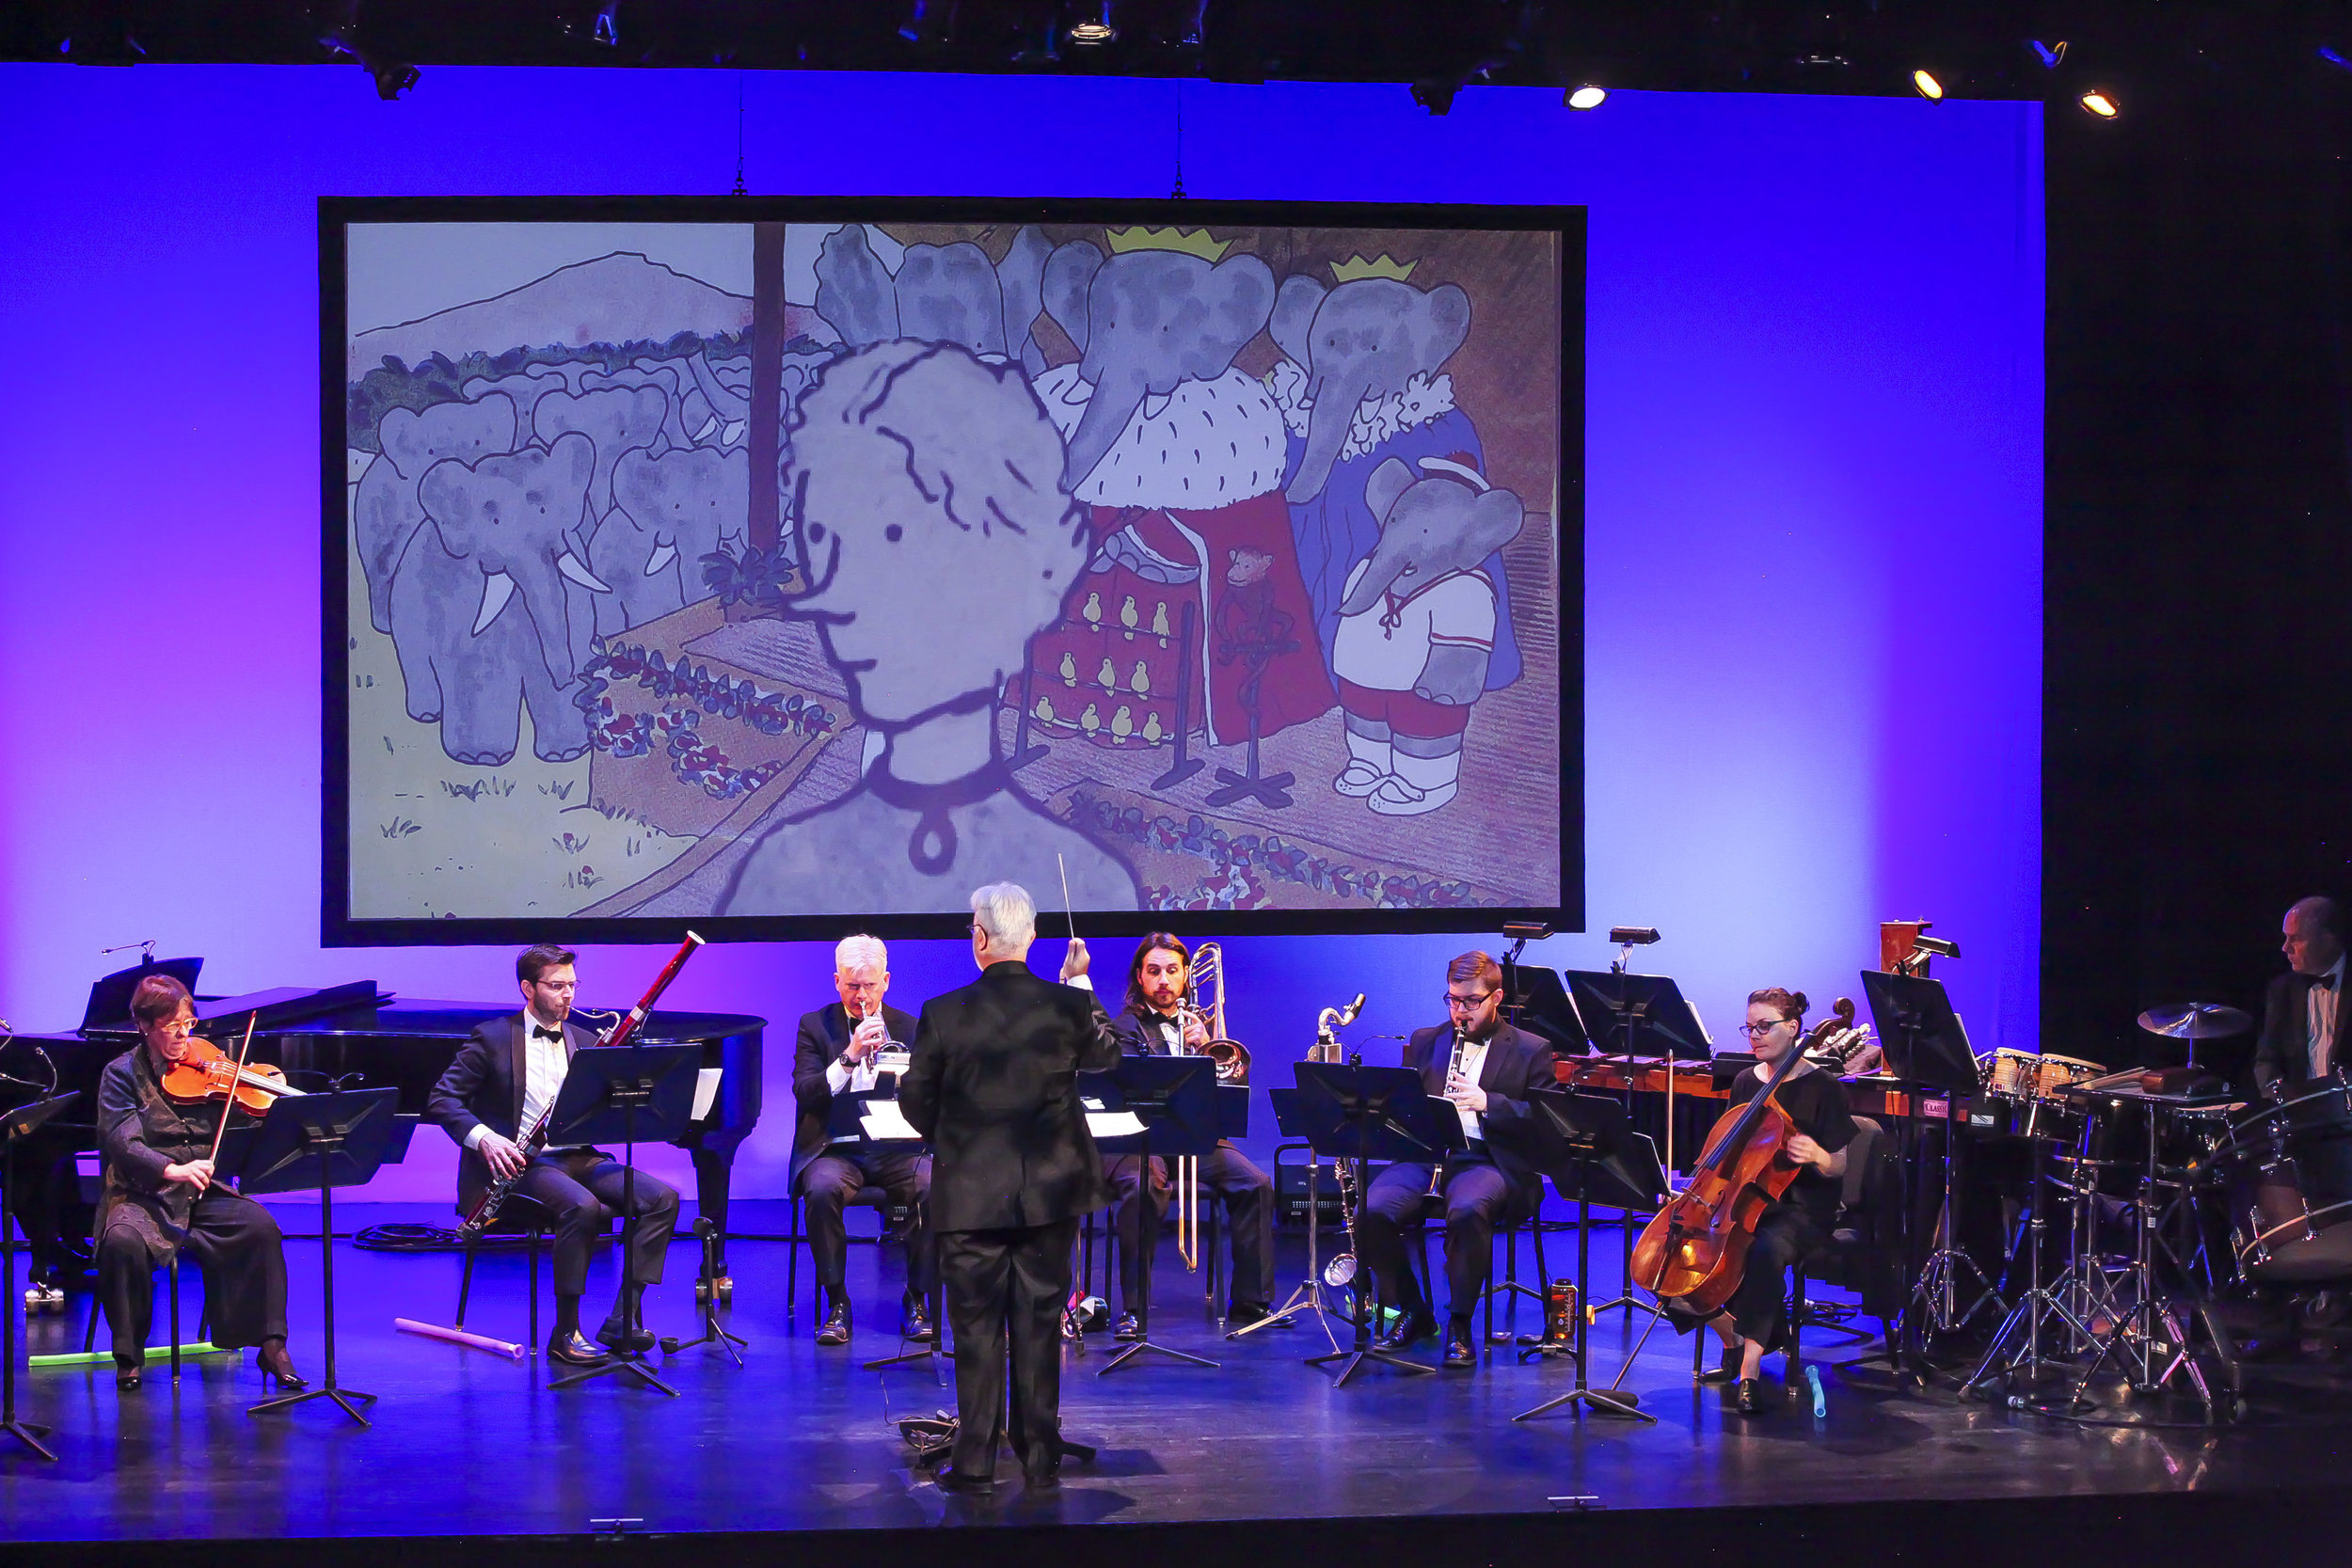 Source Music, Inc.  U.S. Premiere of full new complete Florence Gould Foundation Production with new HD multimedia and the original 8-musician scoring, Florence Gould Hall, French Institute Alliance Française, NYC, November 2018, conducted by Neal Goren. Photo: Amber De Vos